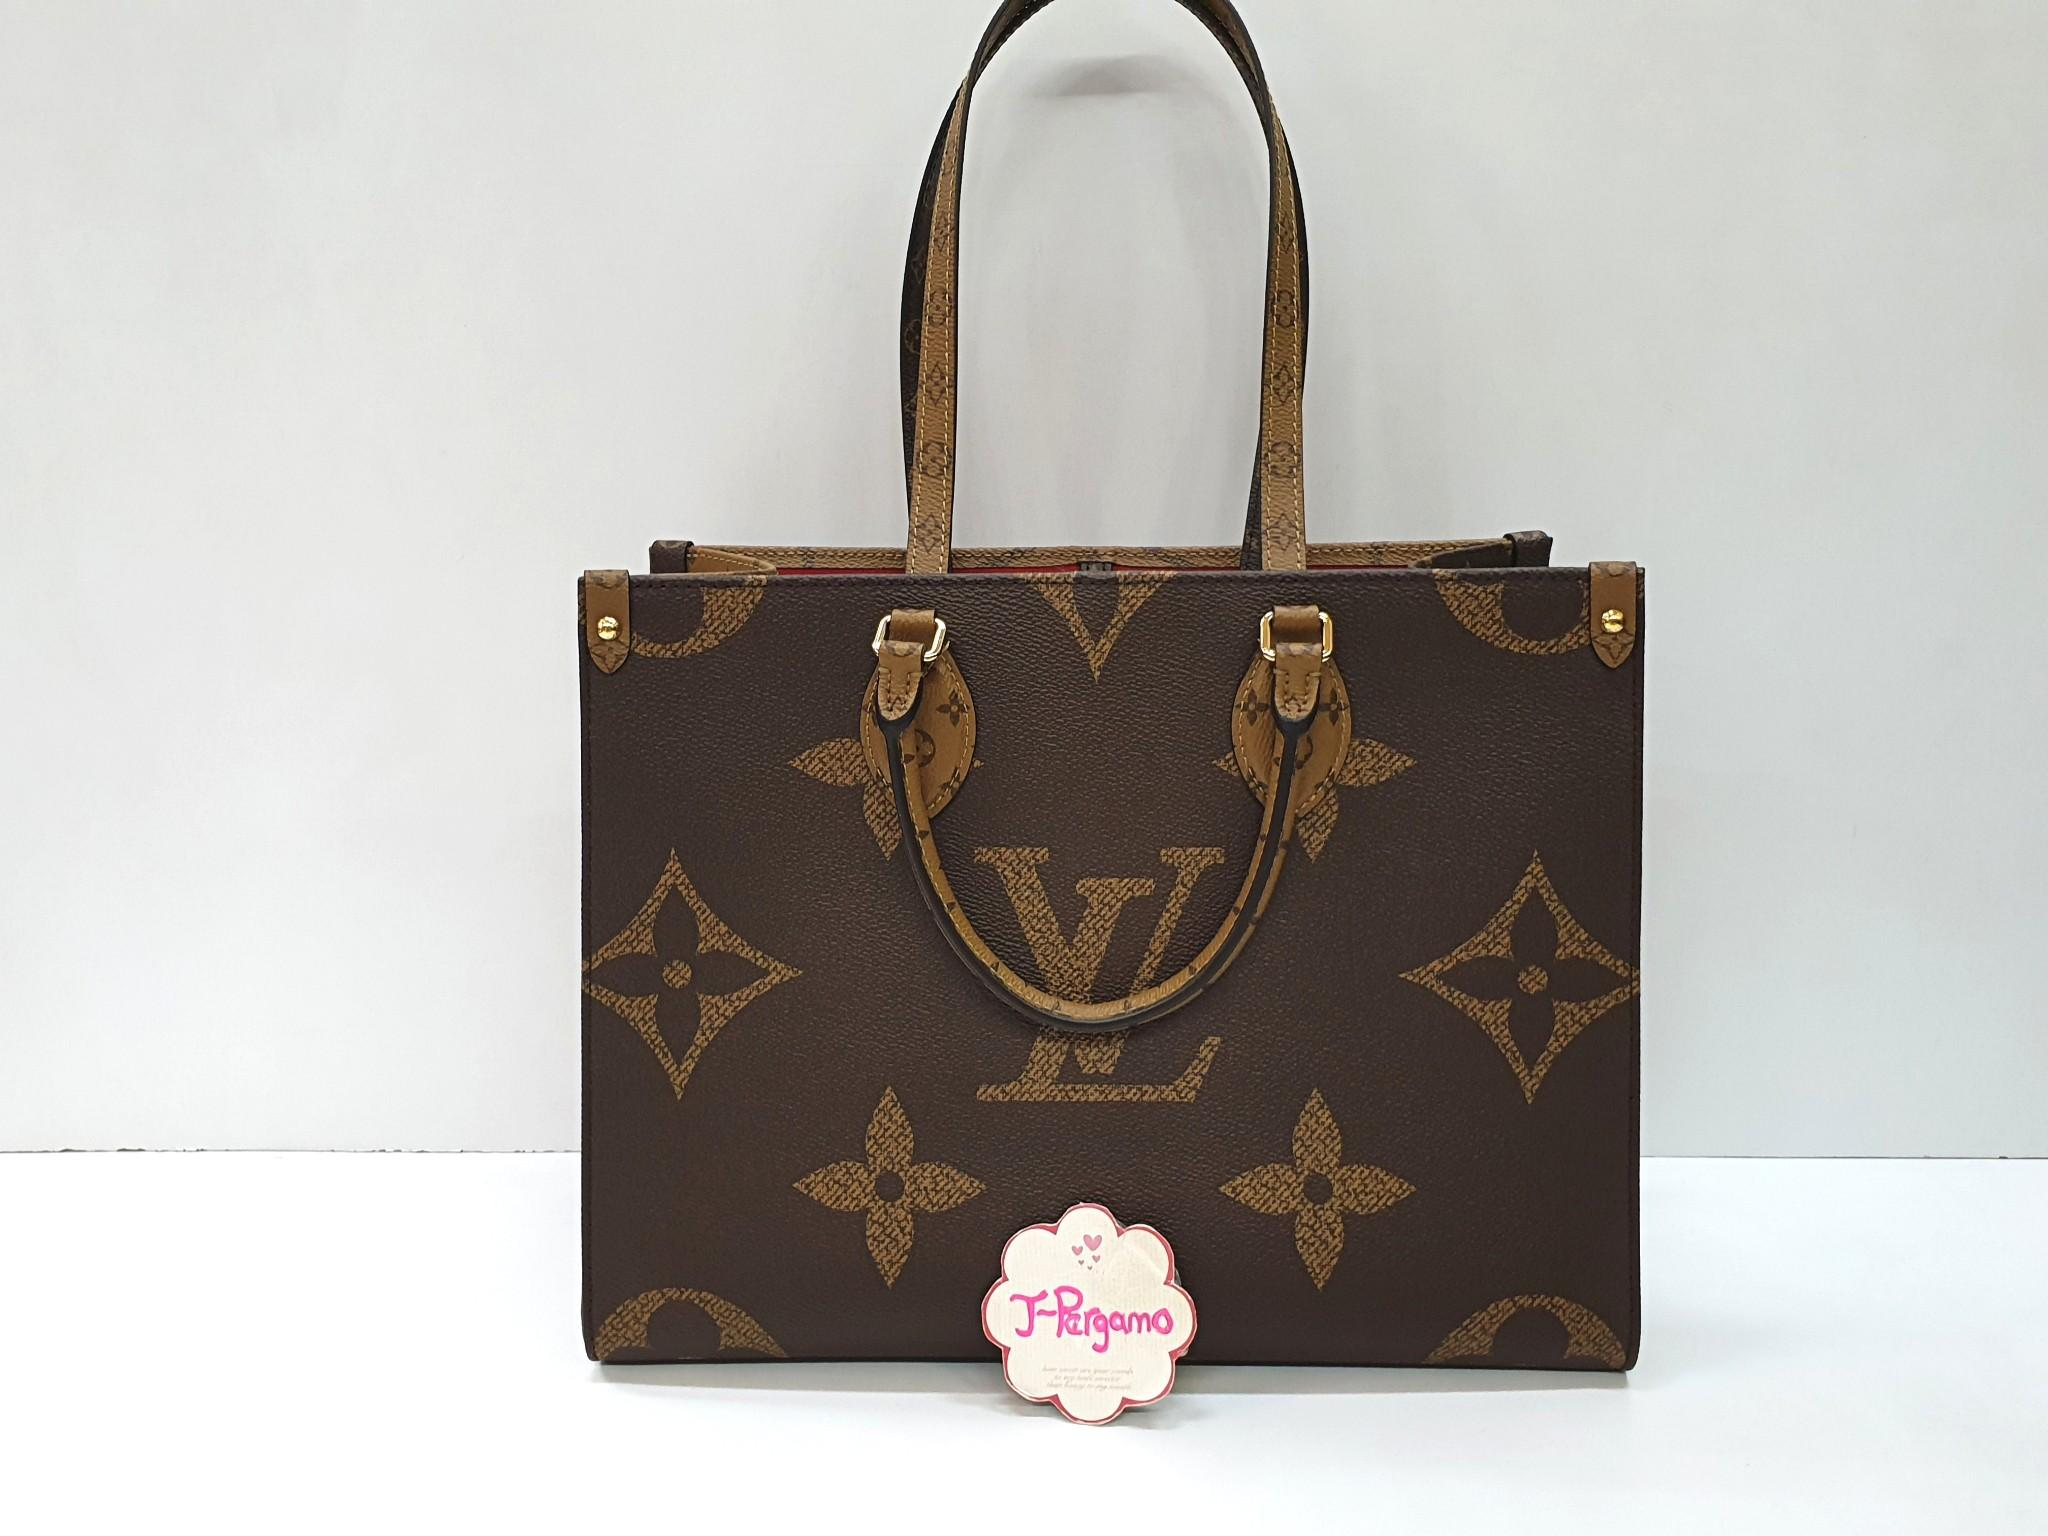 Brand New! Louis Vuitton Monogram Reverse Canvse On The Go MM (M45039) {{Only For Sale}}**No Trade** {{Fixed Price}}**定价**